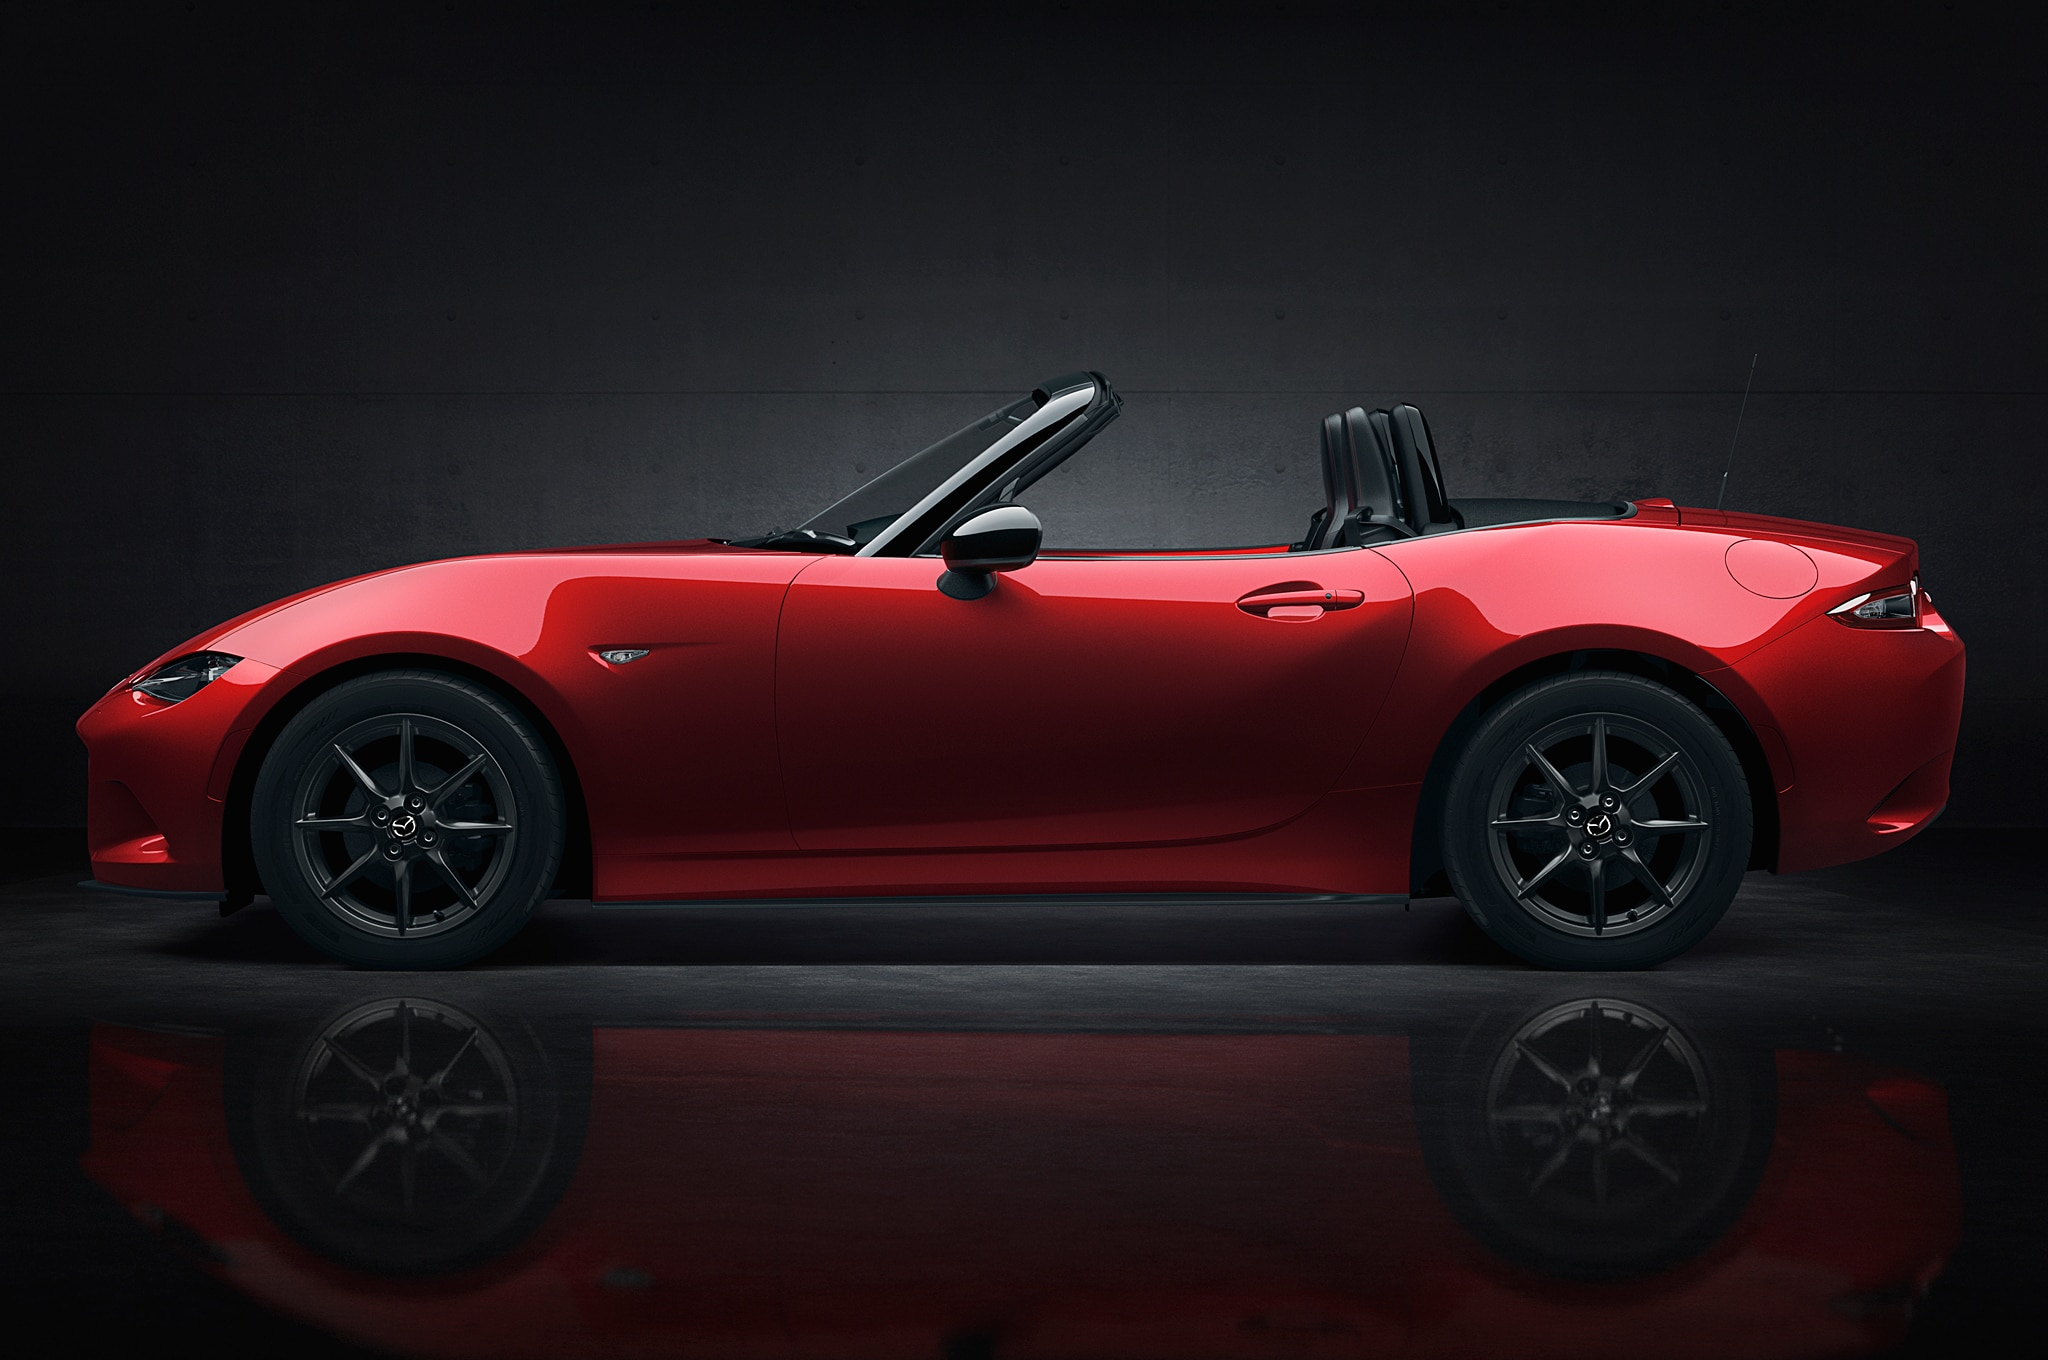 http://st.automobilemag.com/uploads/sites/11/2014/09/2016-Mazda-MX-5-Miata-side-view-top-down2.jpg